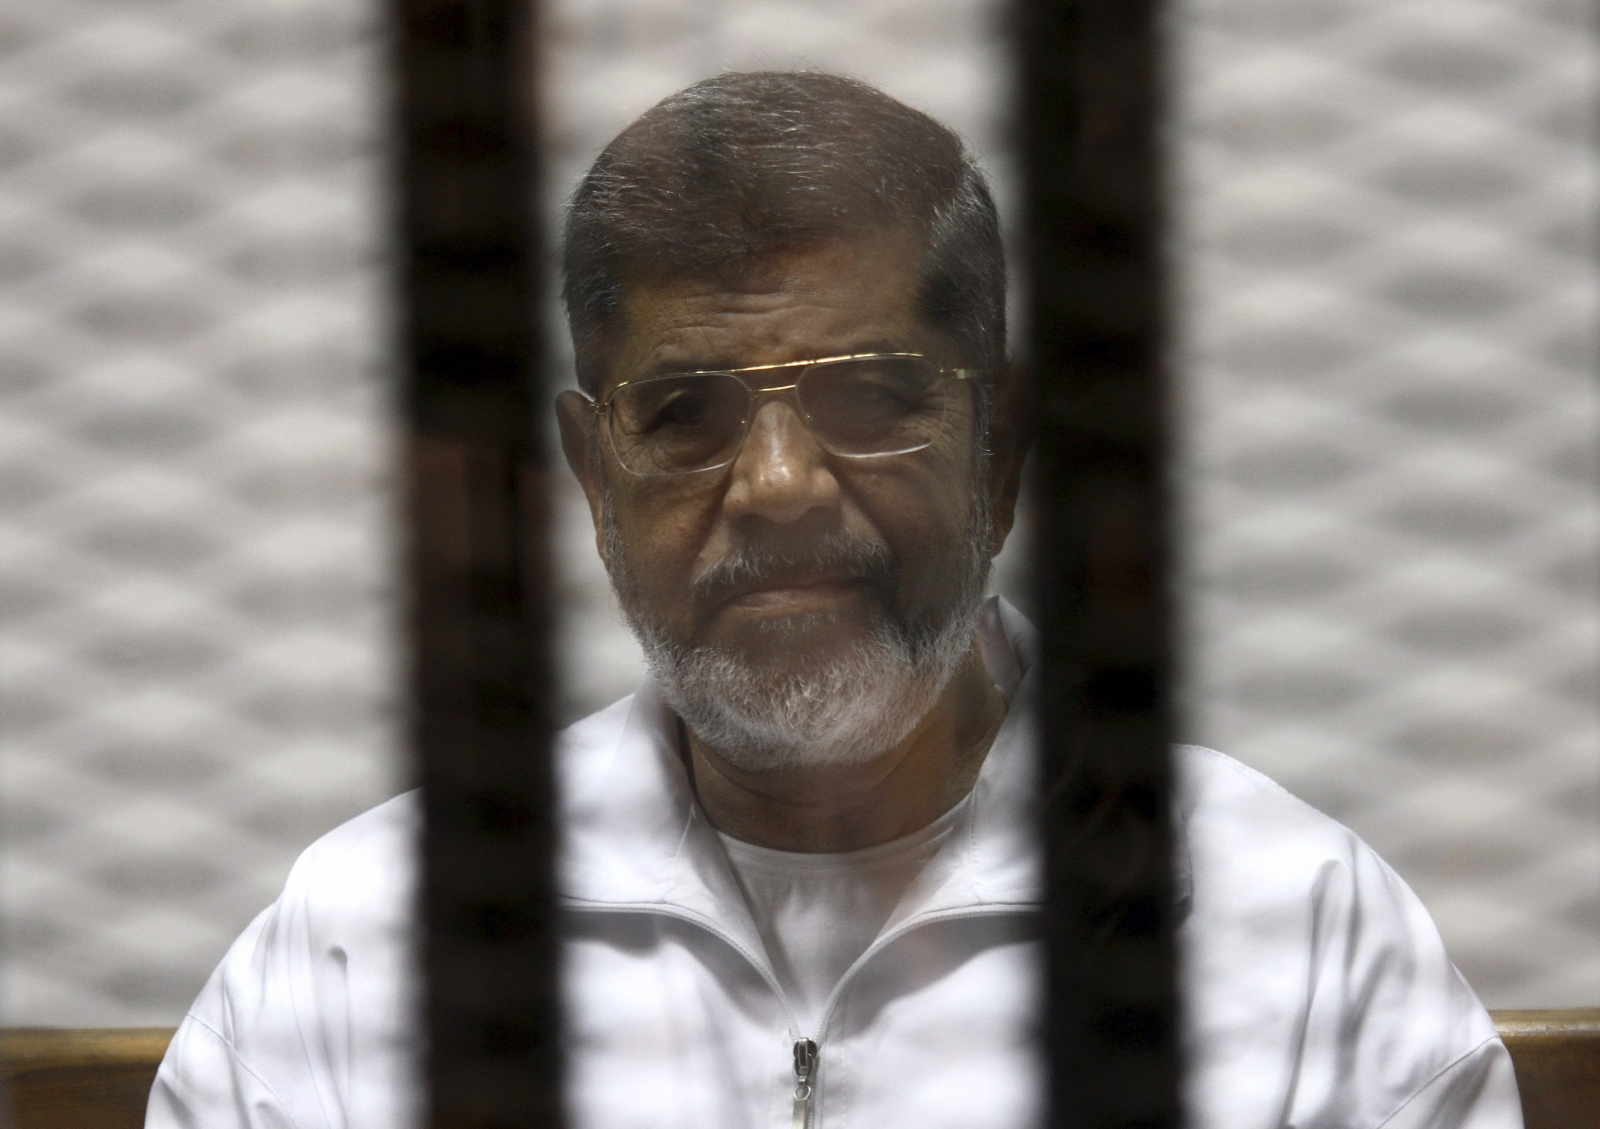 Mohammed Morsi Jailed Egypt